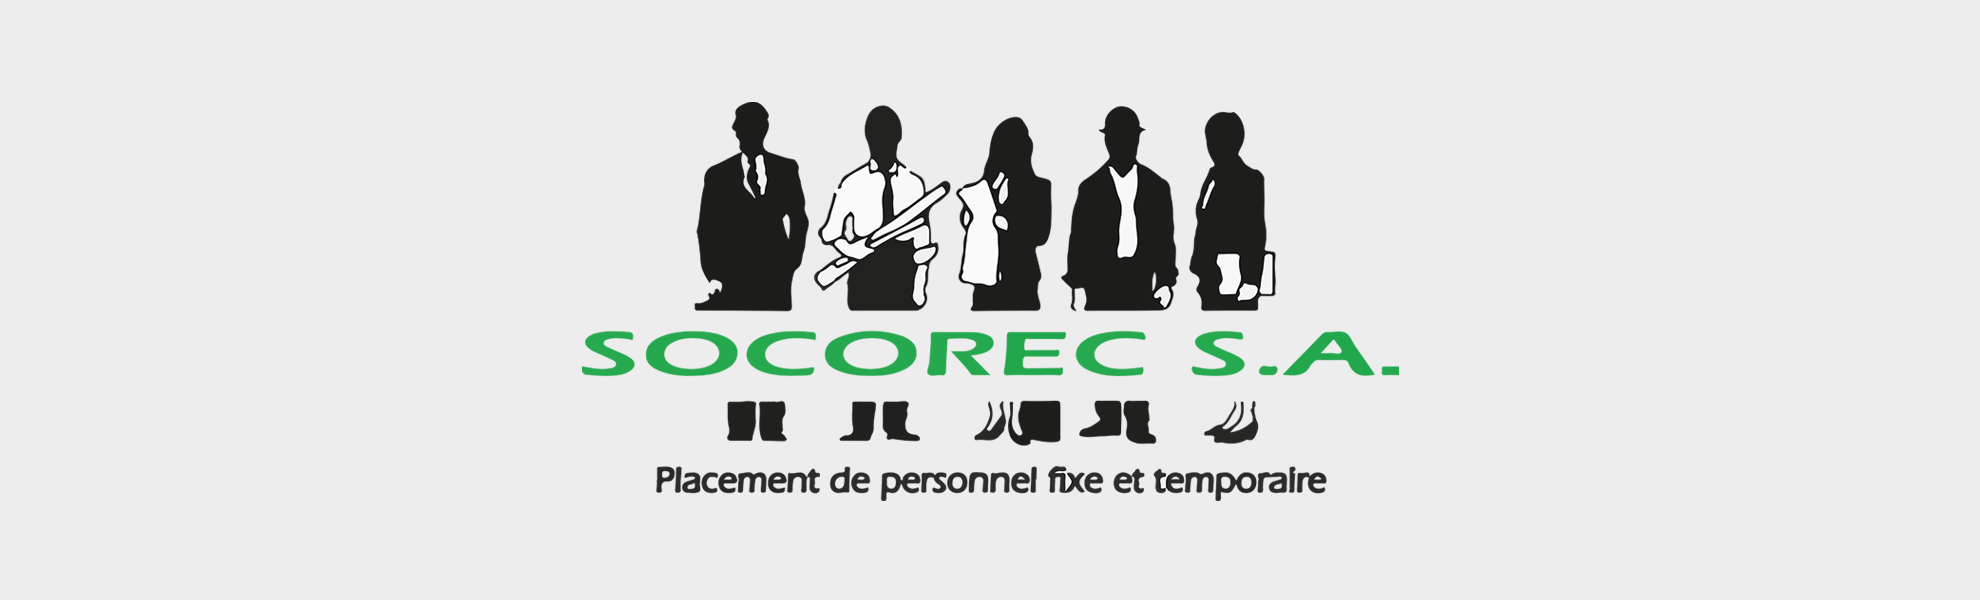 Socorec SA. Placement et